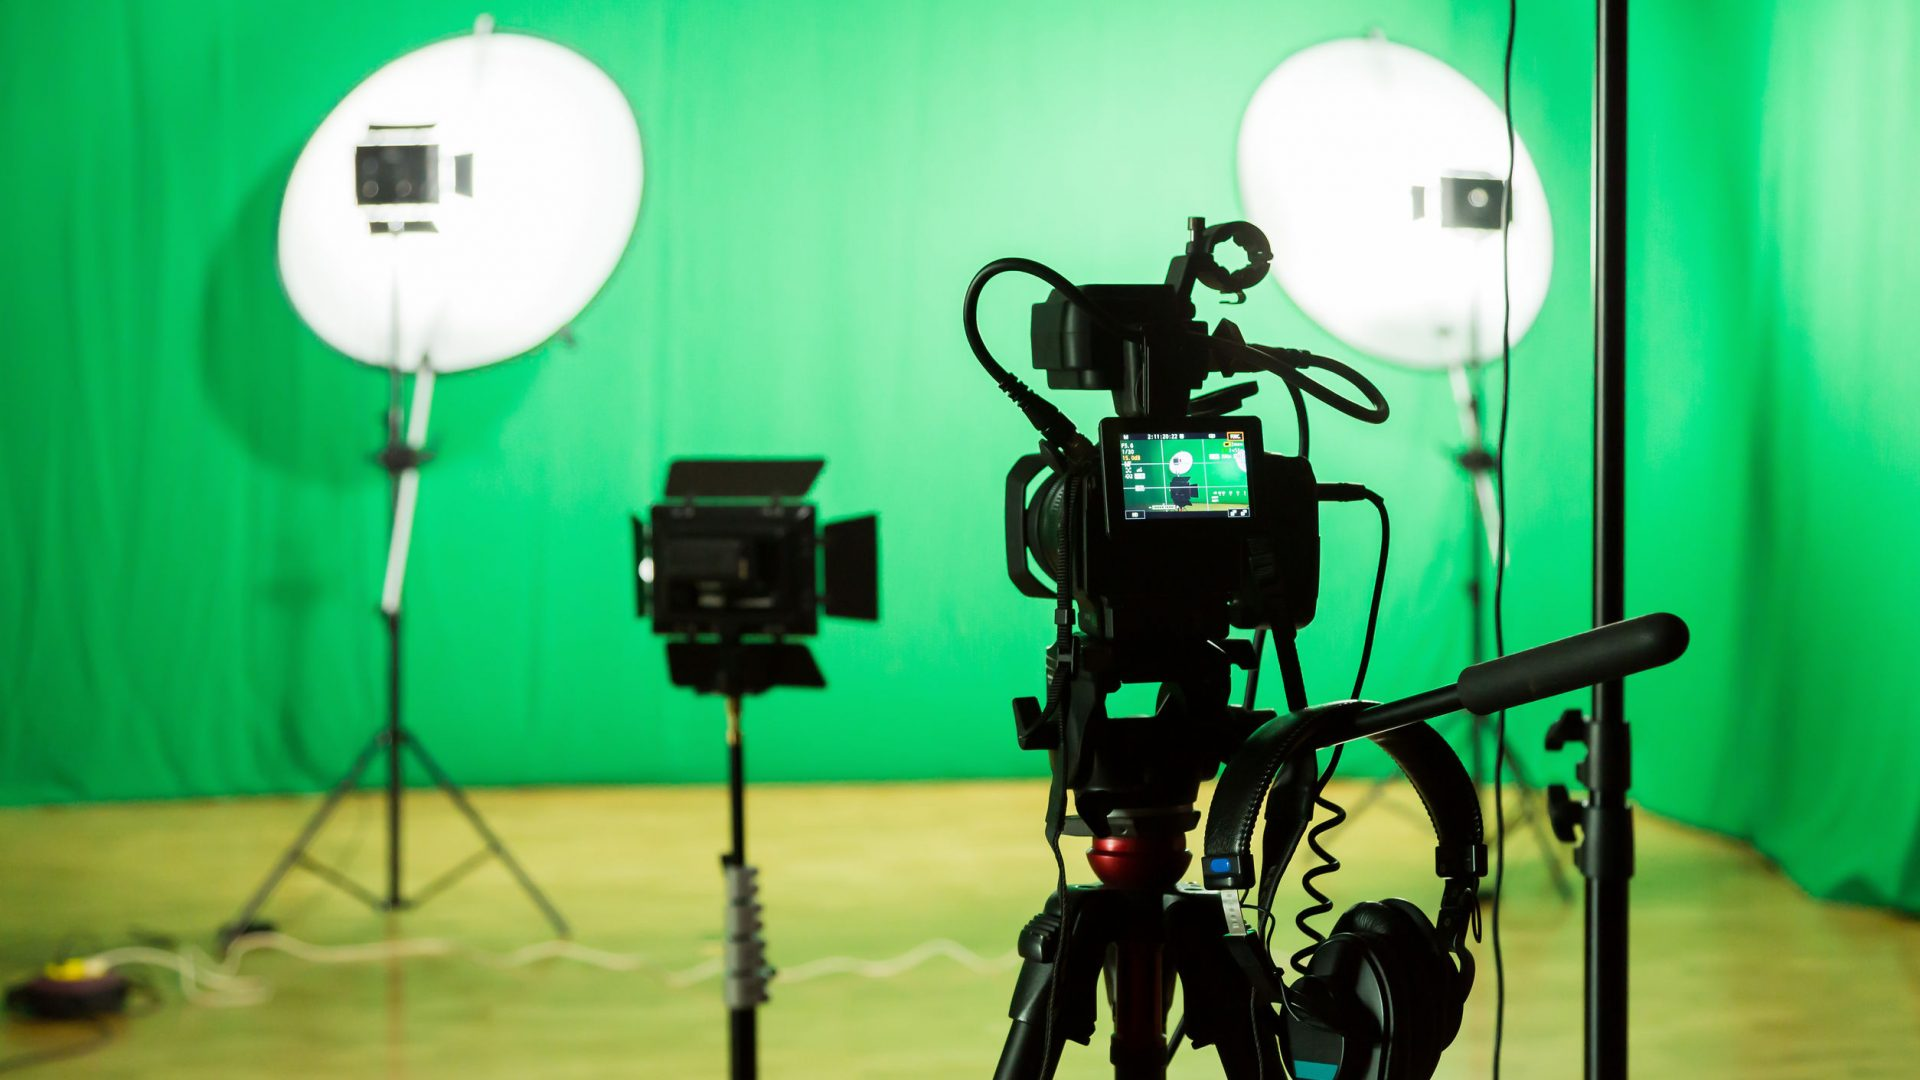 90315764 - studio for filming on a green background. the chroma key. lighting equipment in the studio. green screen.